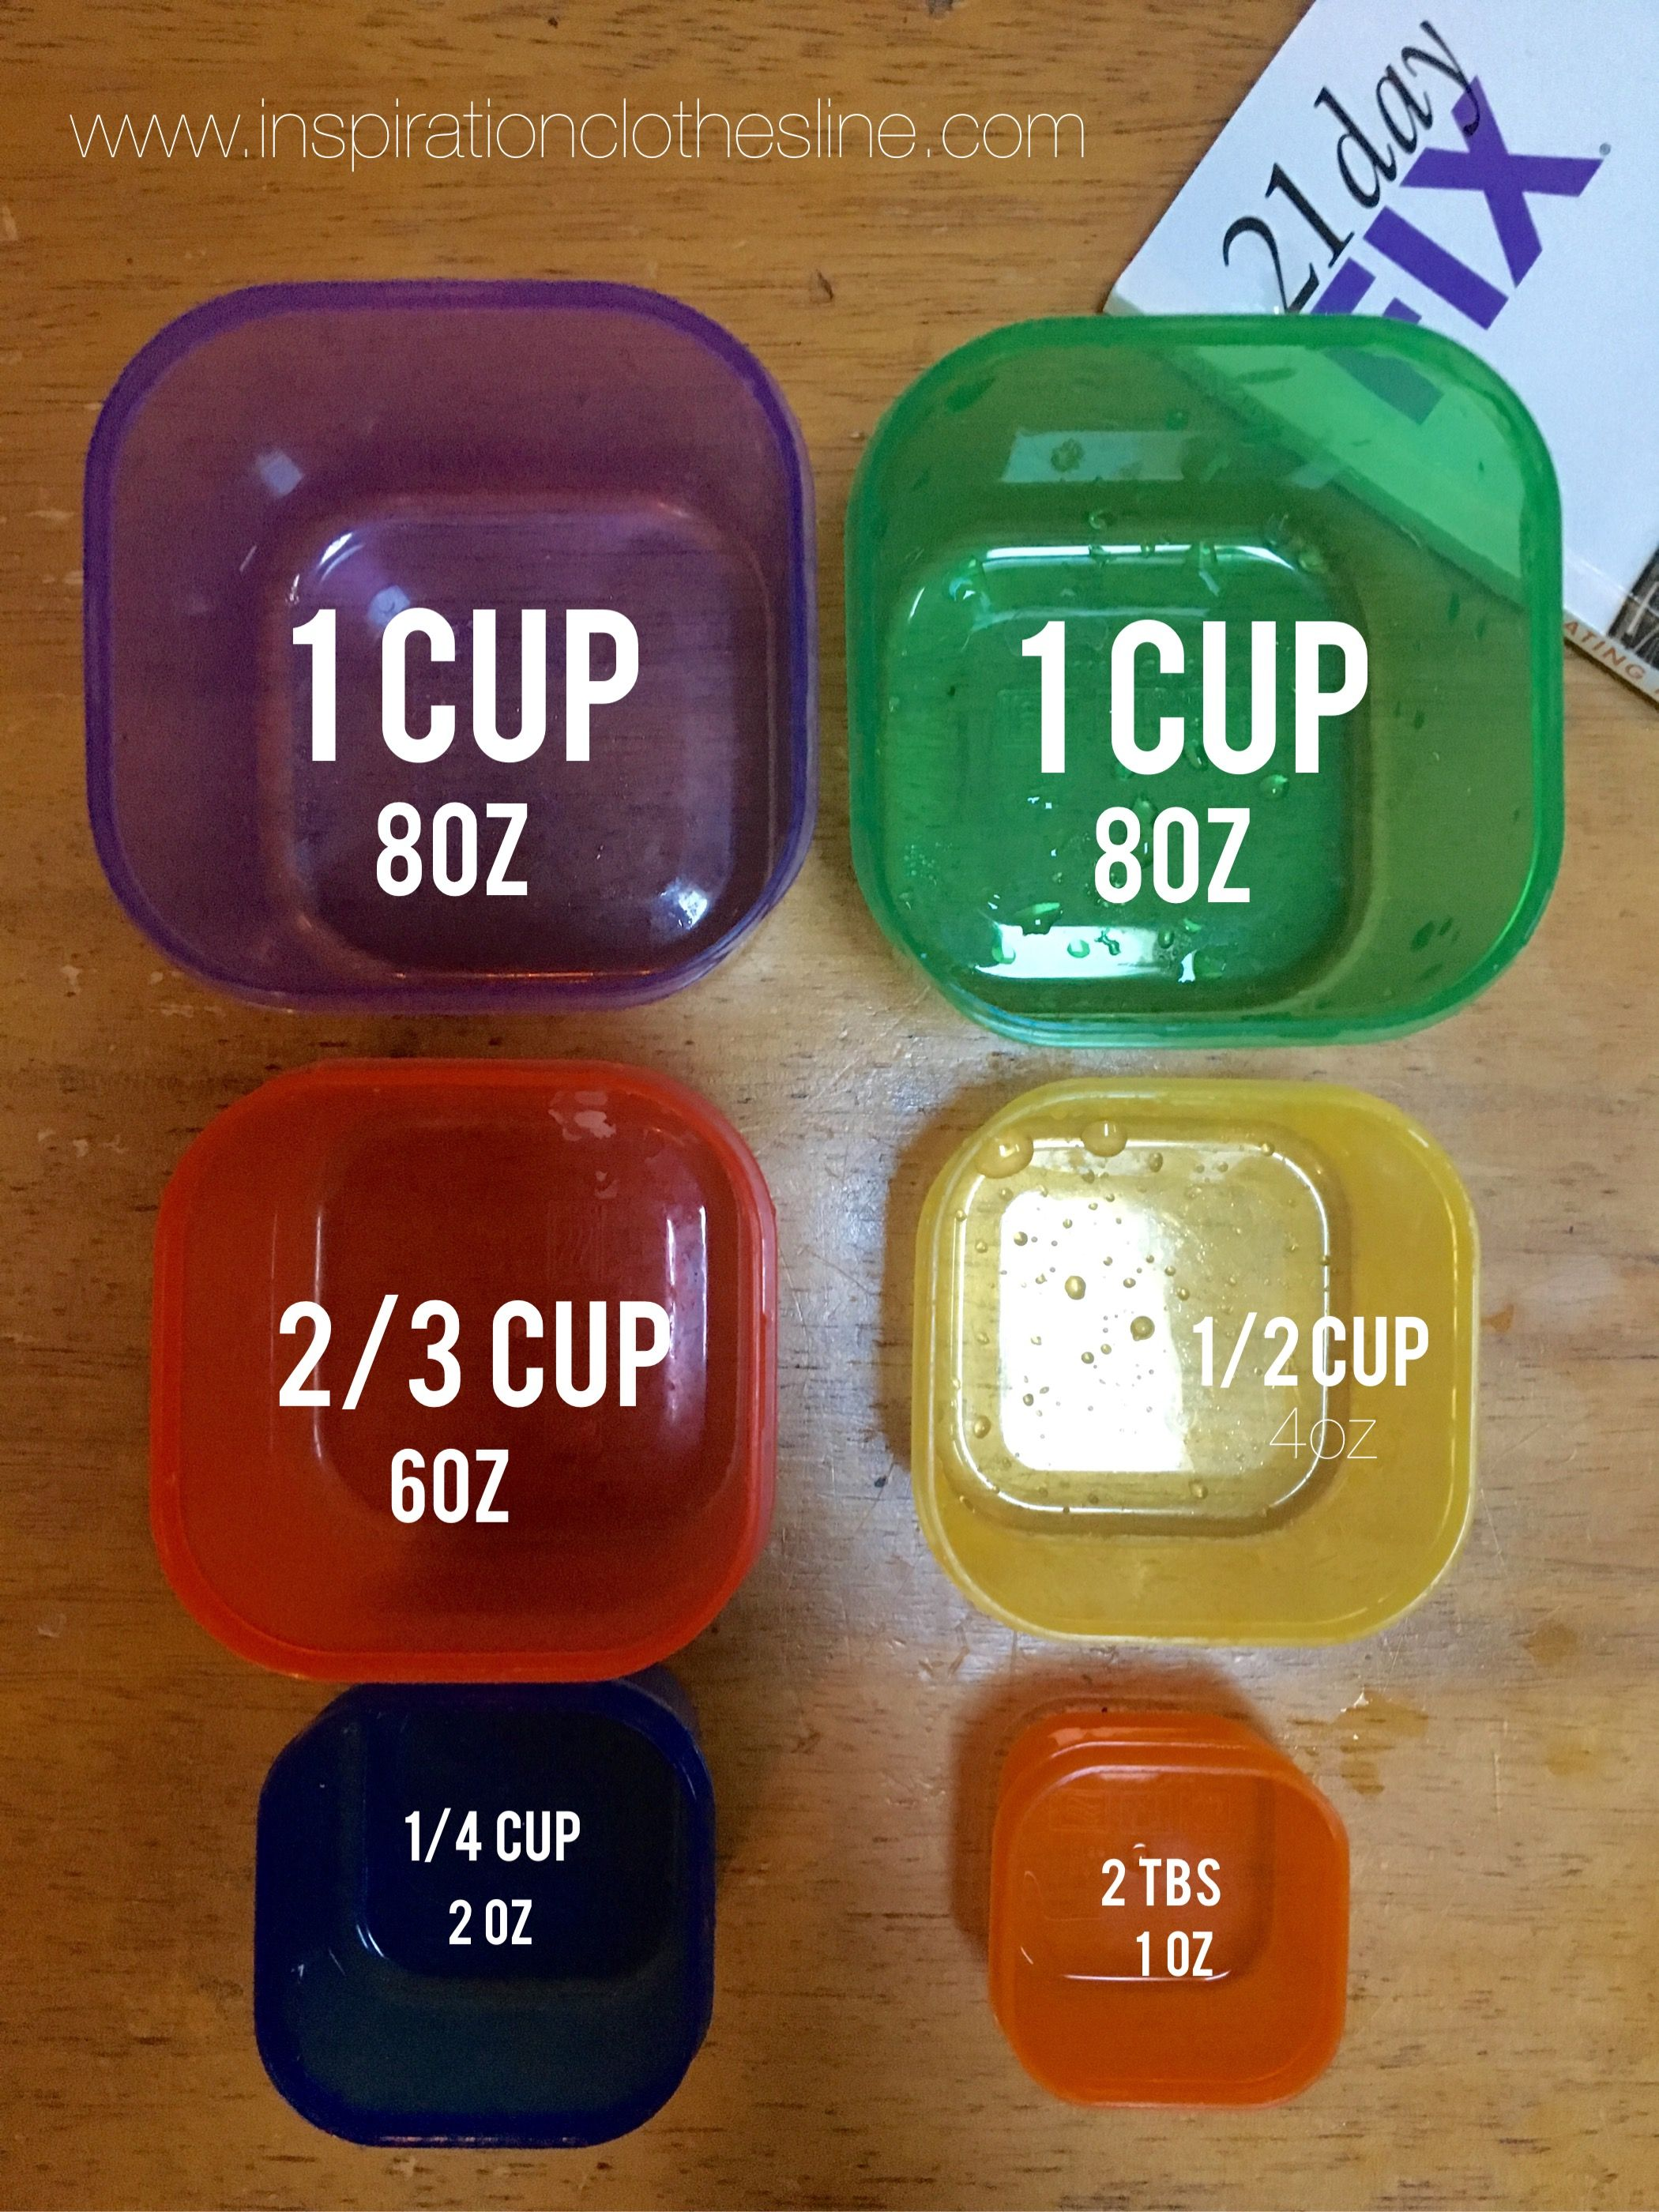 21 Day Fix Container measurements: basic but necessary info!